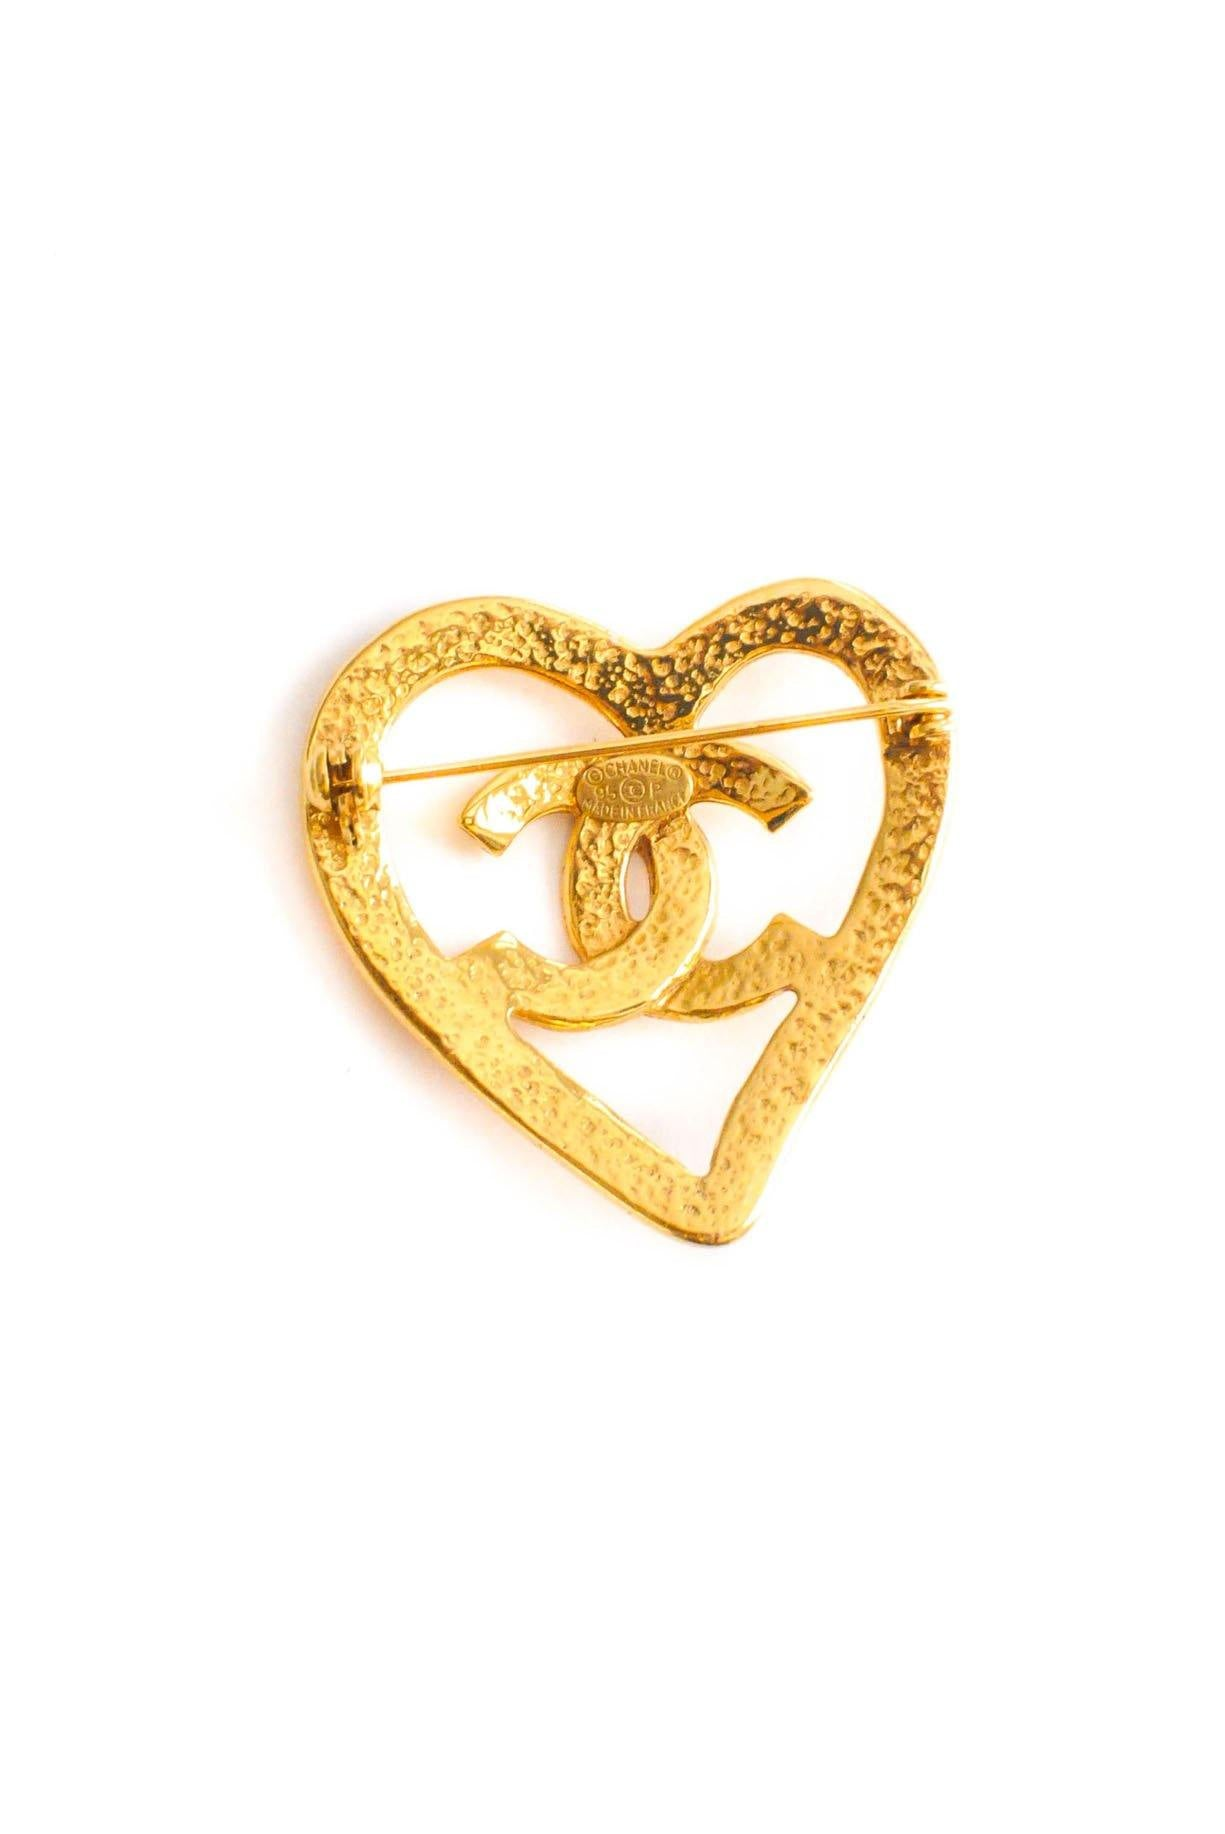 Chanel Heart Brooch